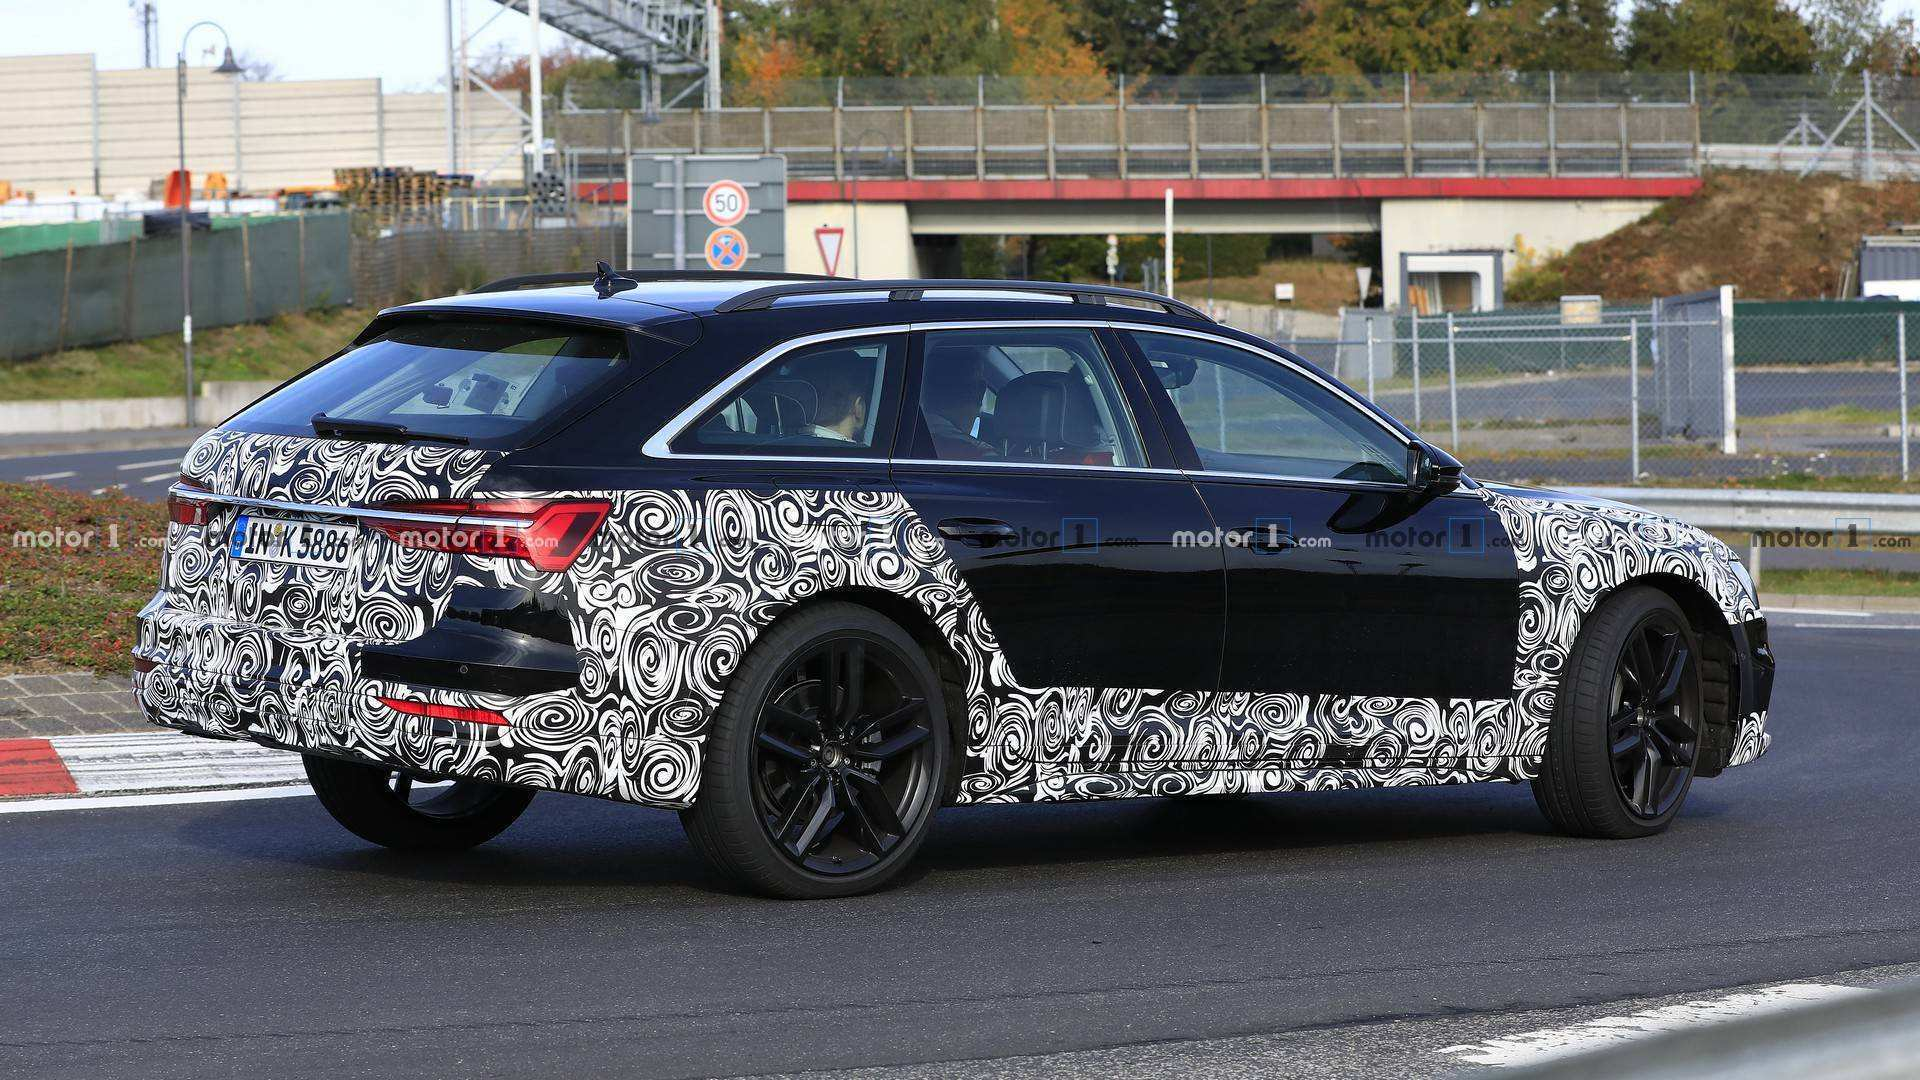 71 A 2020 Audi A6 Spy Shoot